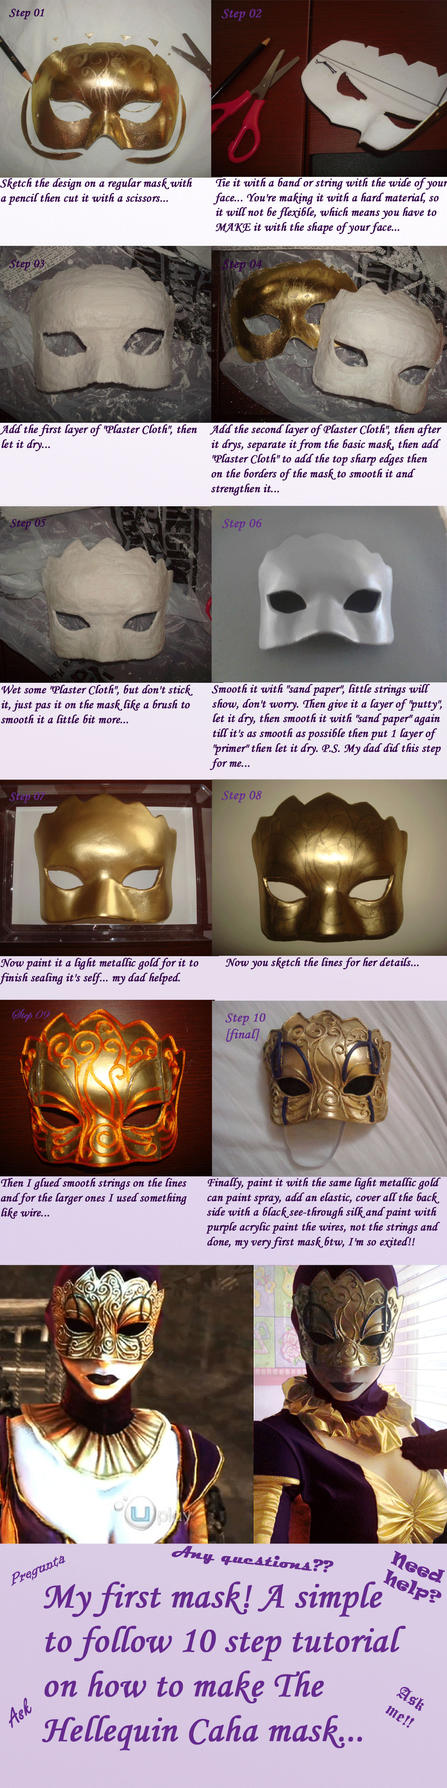 The Hellequin (Caha) mask tutorial by Josumi-kun